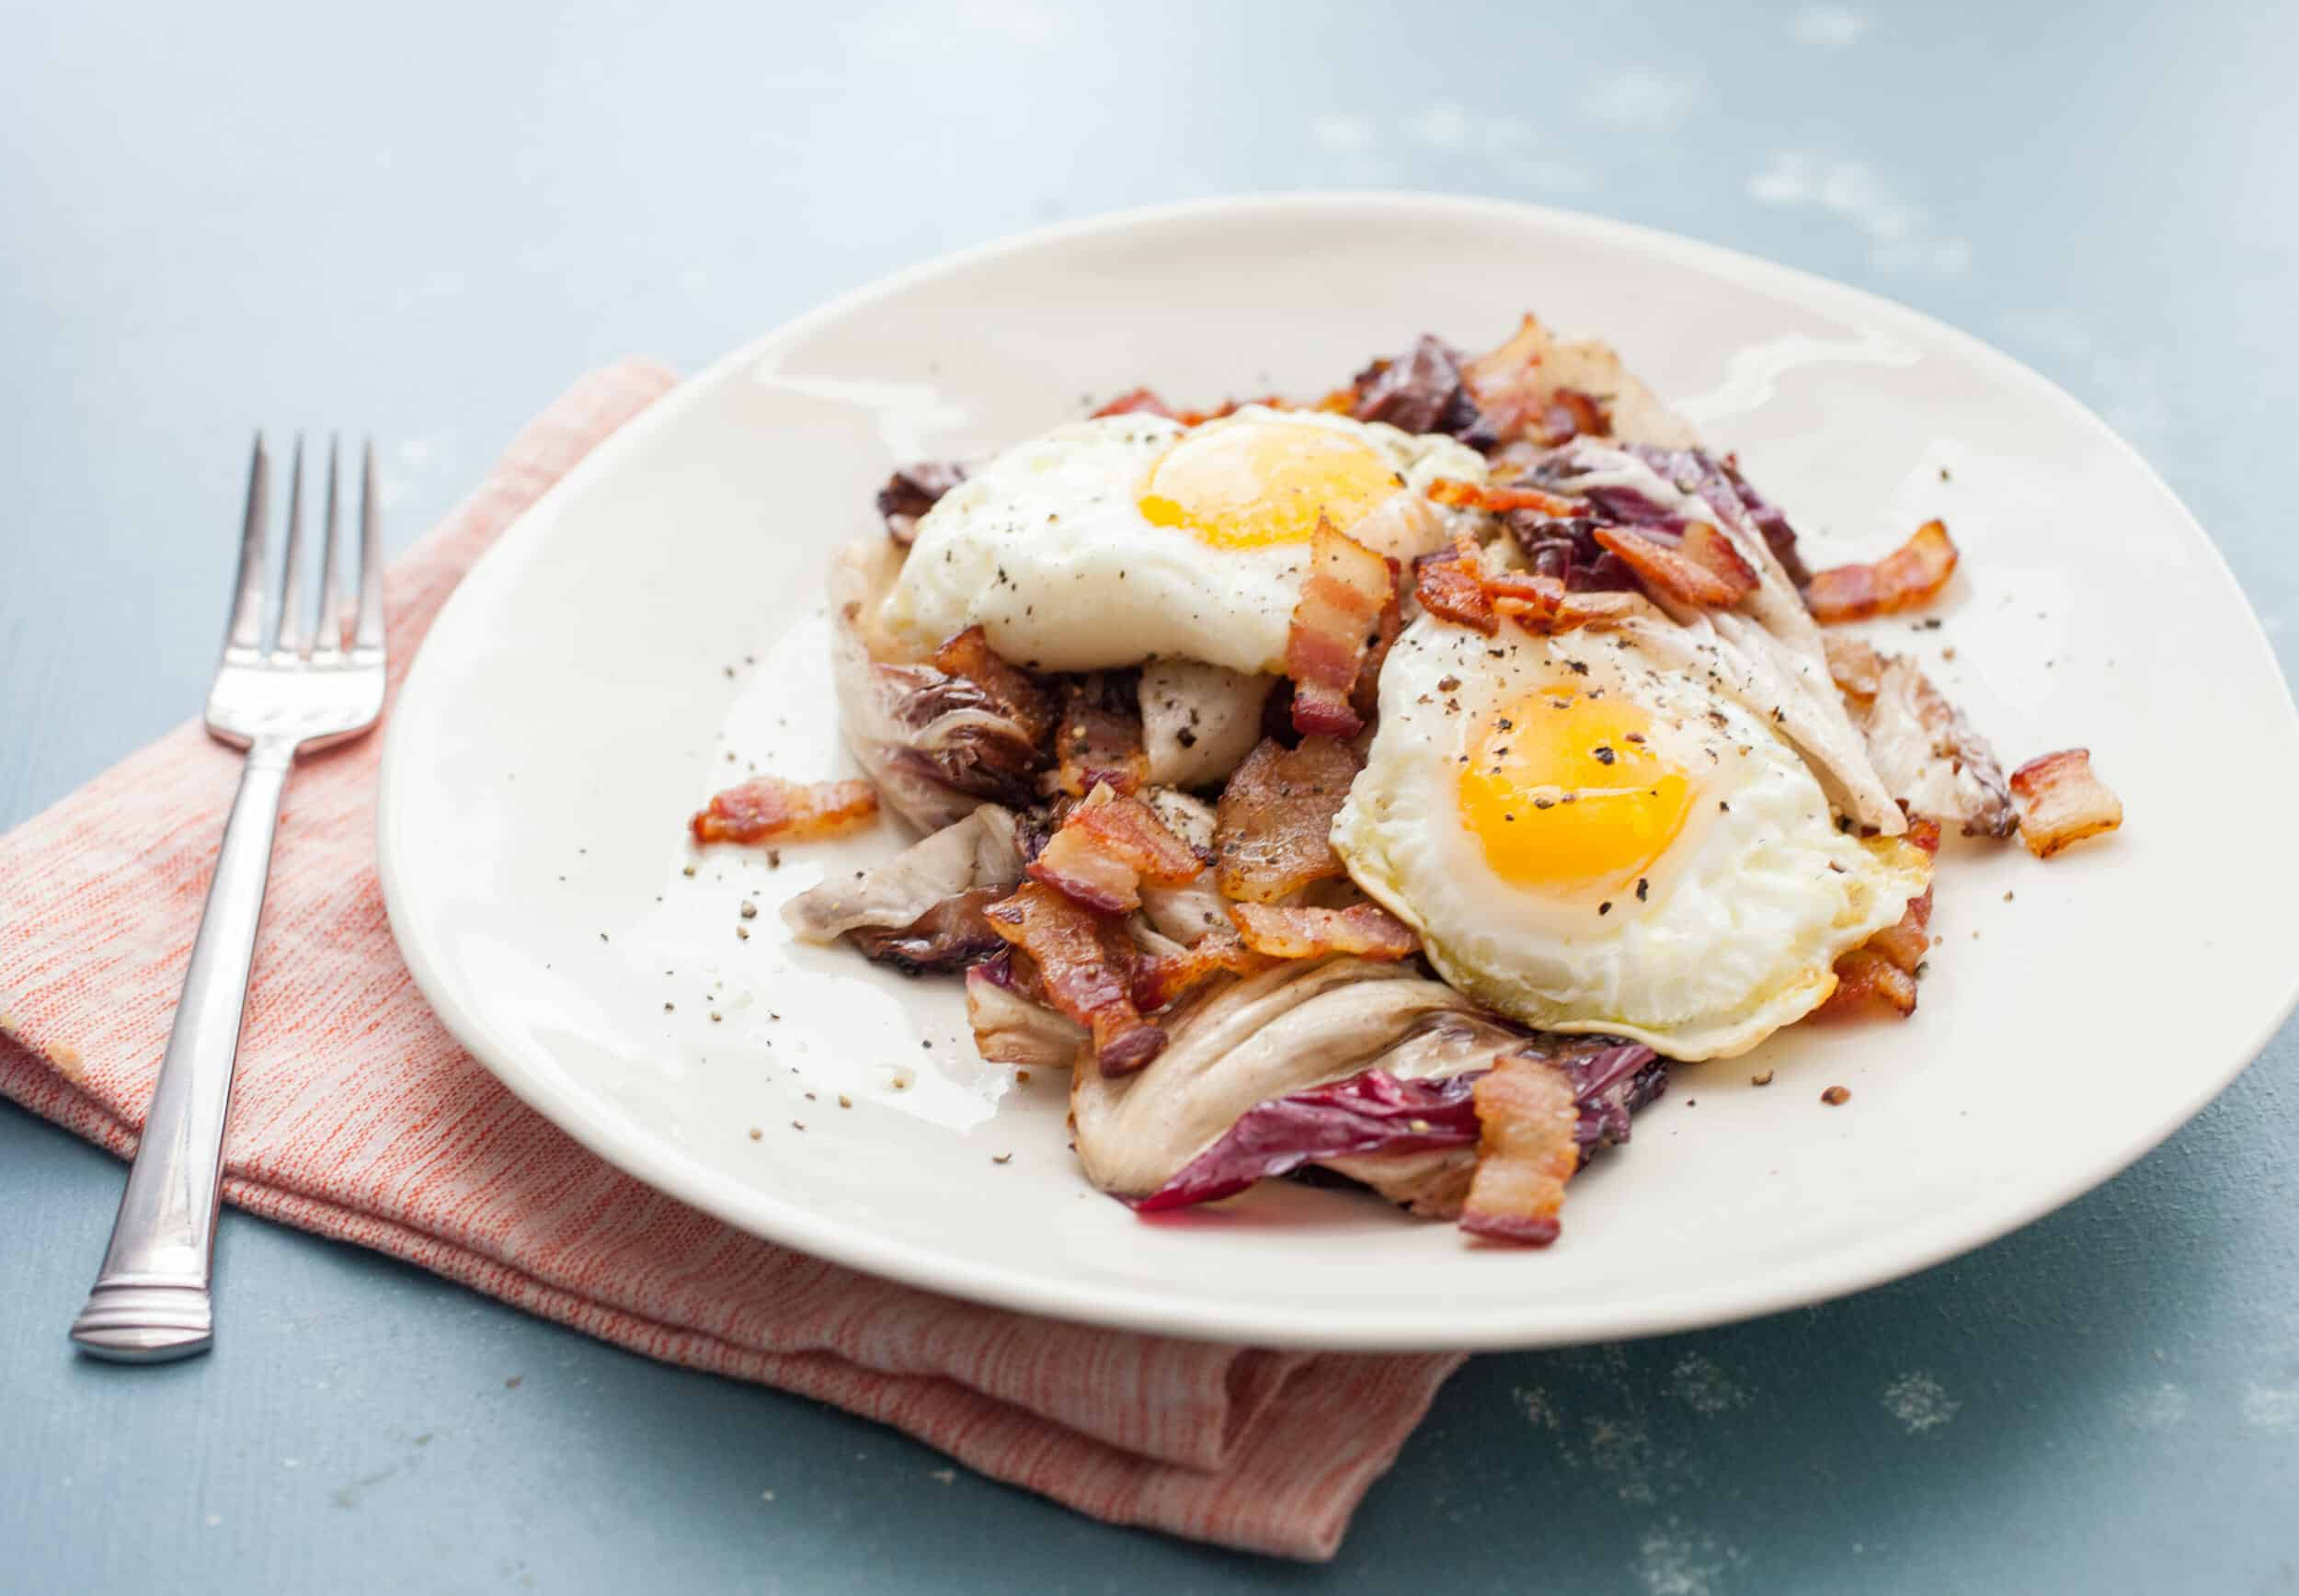 Grilled Radicchio Salad: This unassuming salad is jam-packed with flavor thanks to a bacon vinaigrette and some crispy eggs on top. YUM! | macheesmo.com